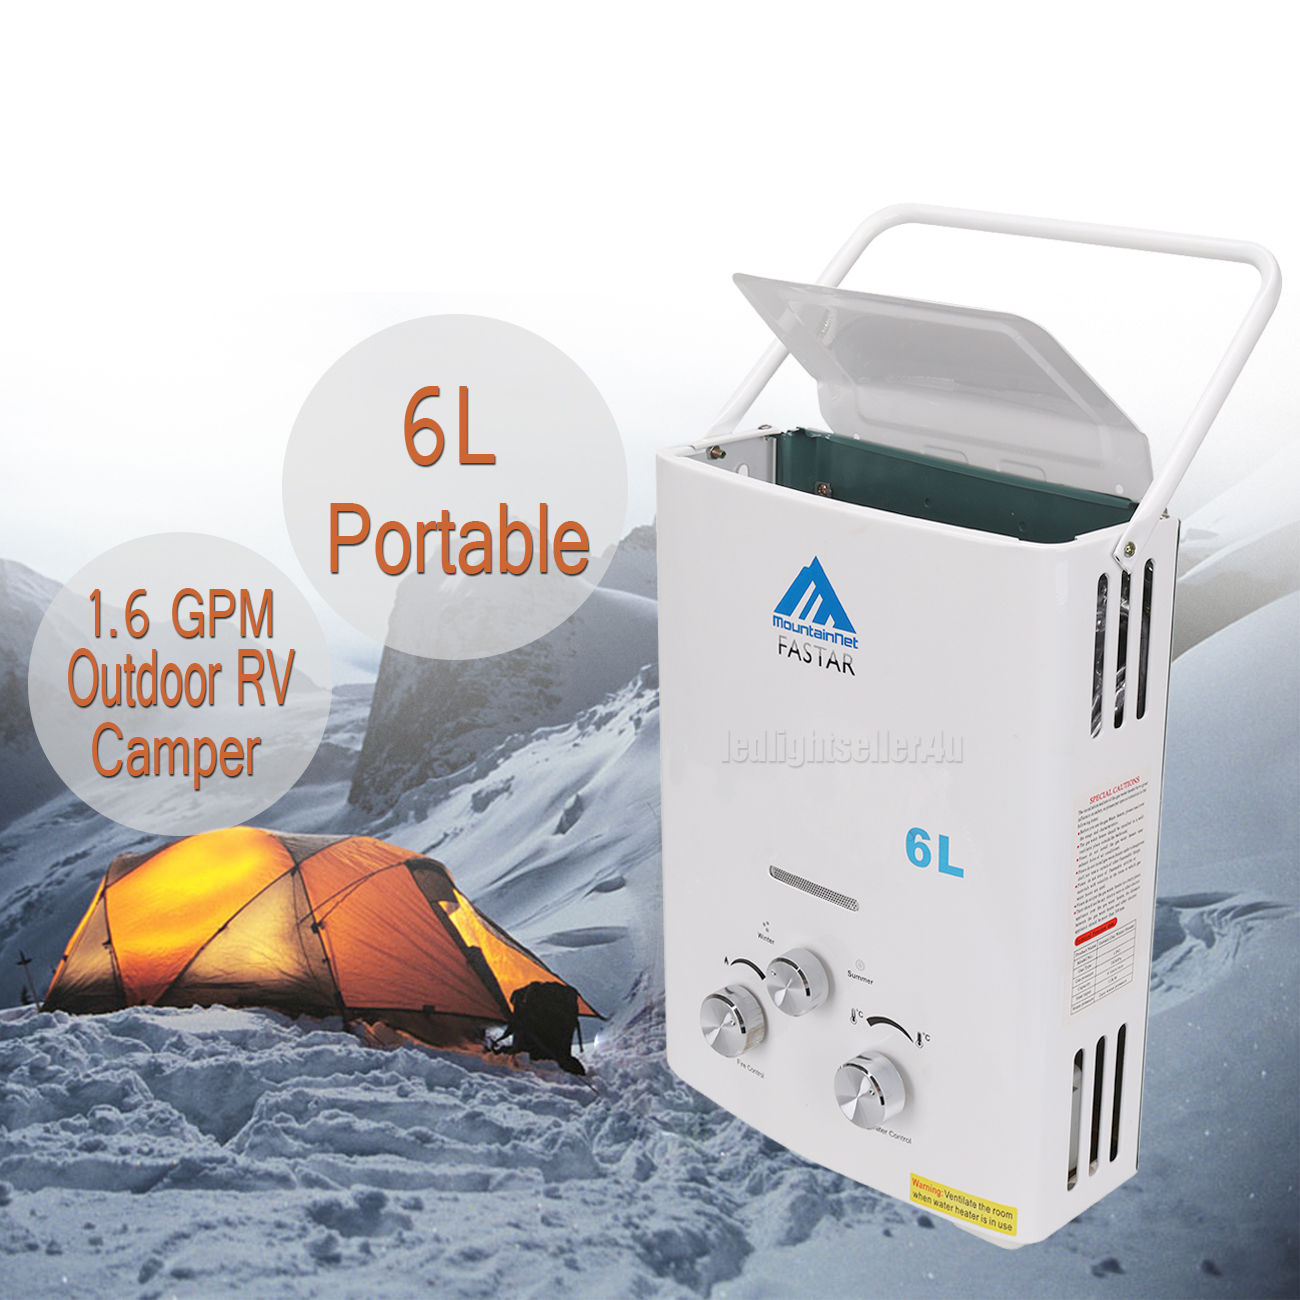 HOTSALES Tankless Hot Water Heater Propane Gas LPG 1.6 GPM Outdoor RV Camper 6L Portable